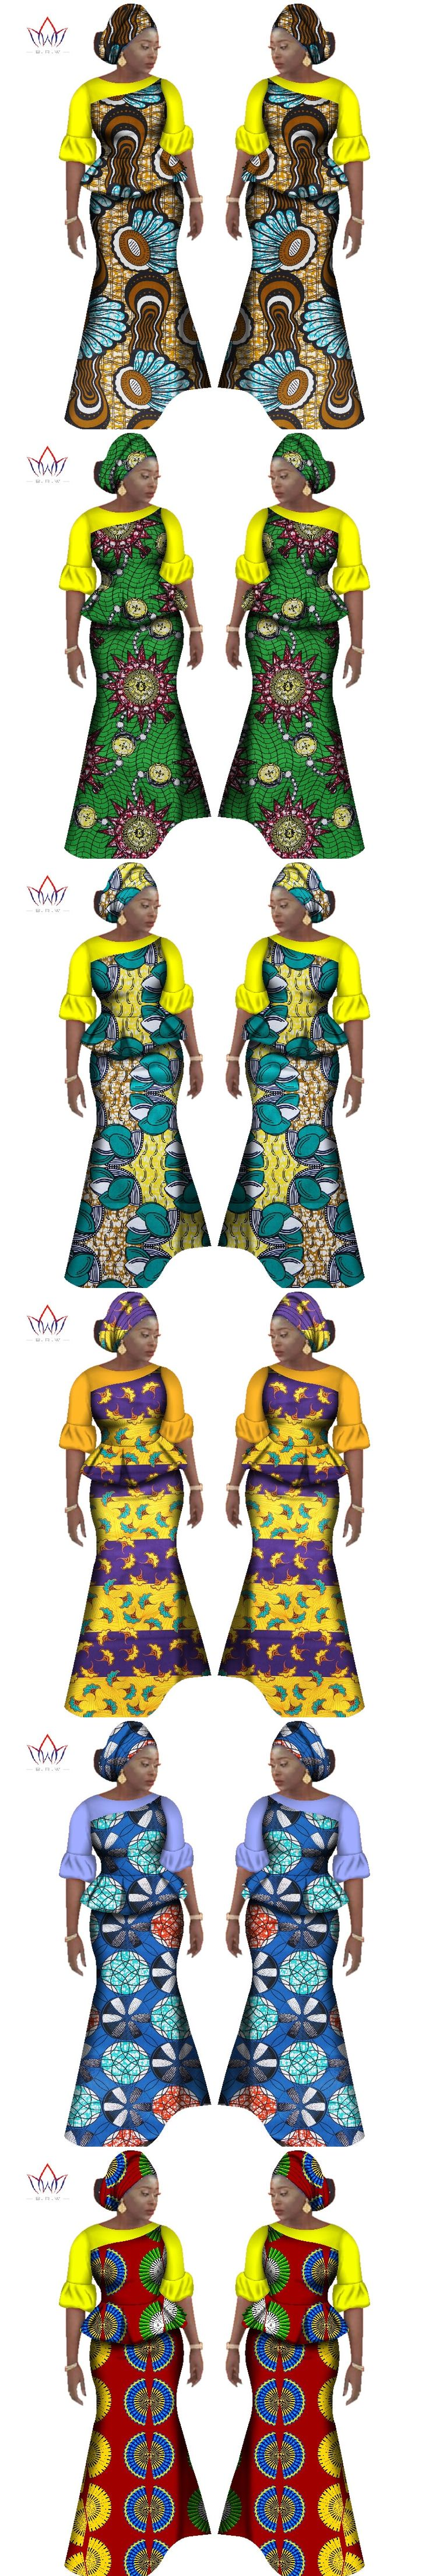 BRW 2017 Autumn African Skirt Sets for Women Bazin Elegany Africa Clothing Dashiki Flowers Traditional African Clothing WY2349